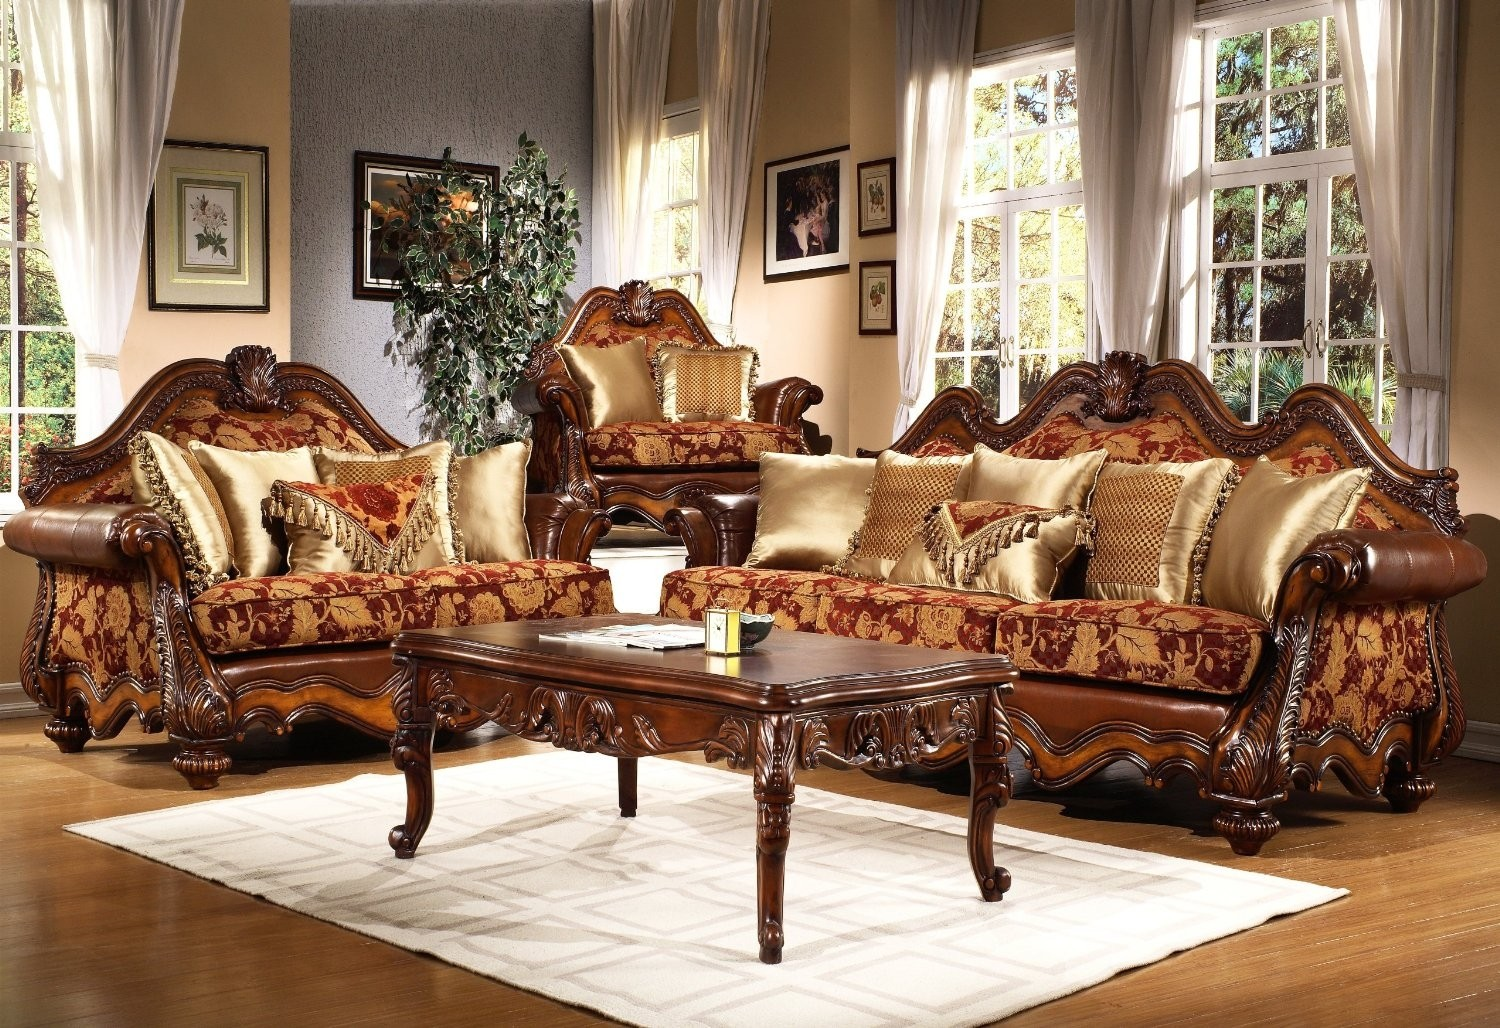 Attirant Victorian Living Room Furniture Set